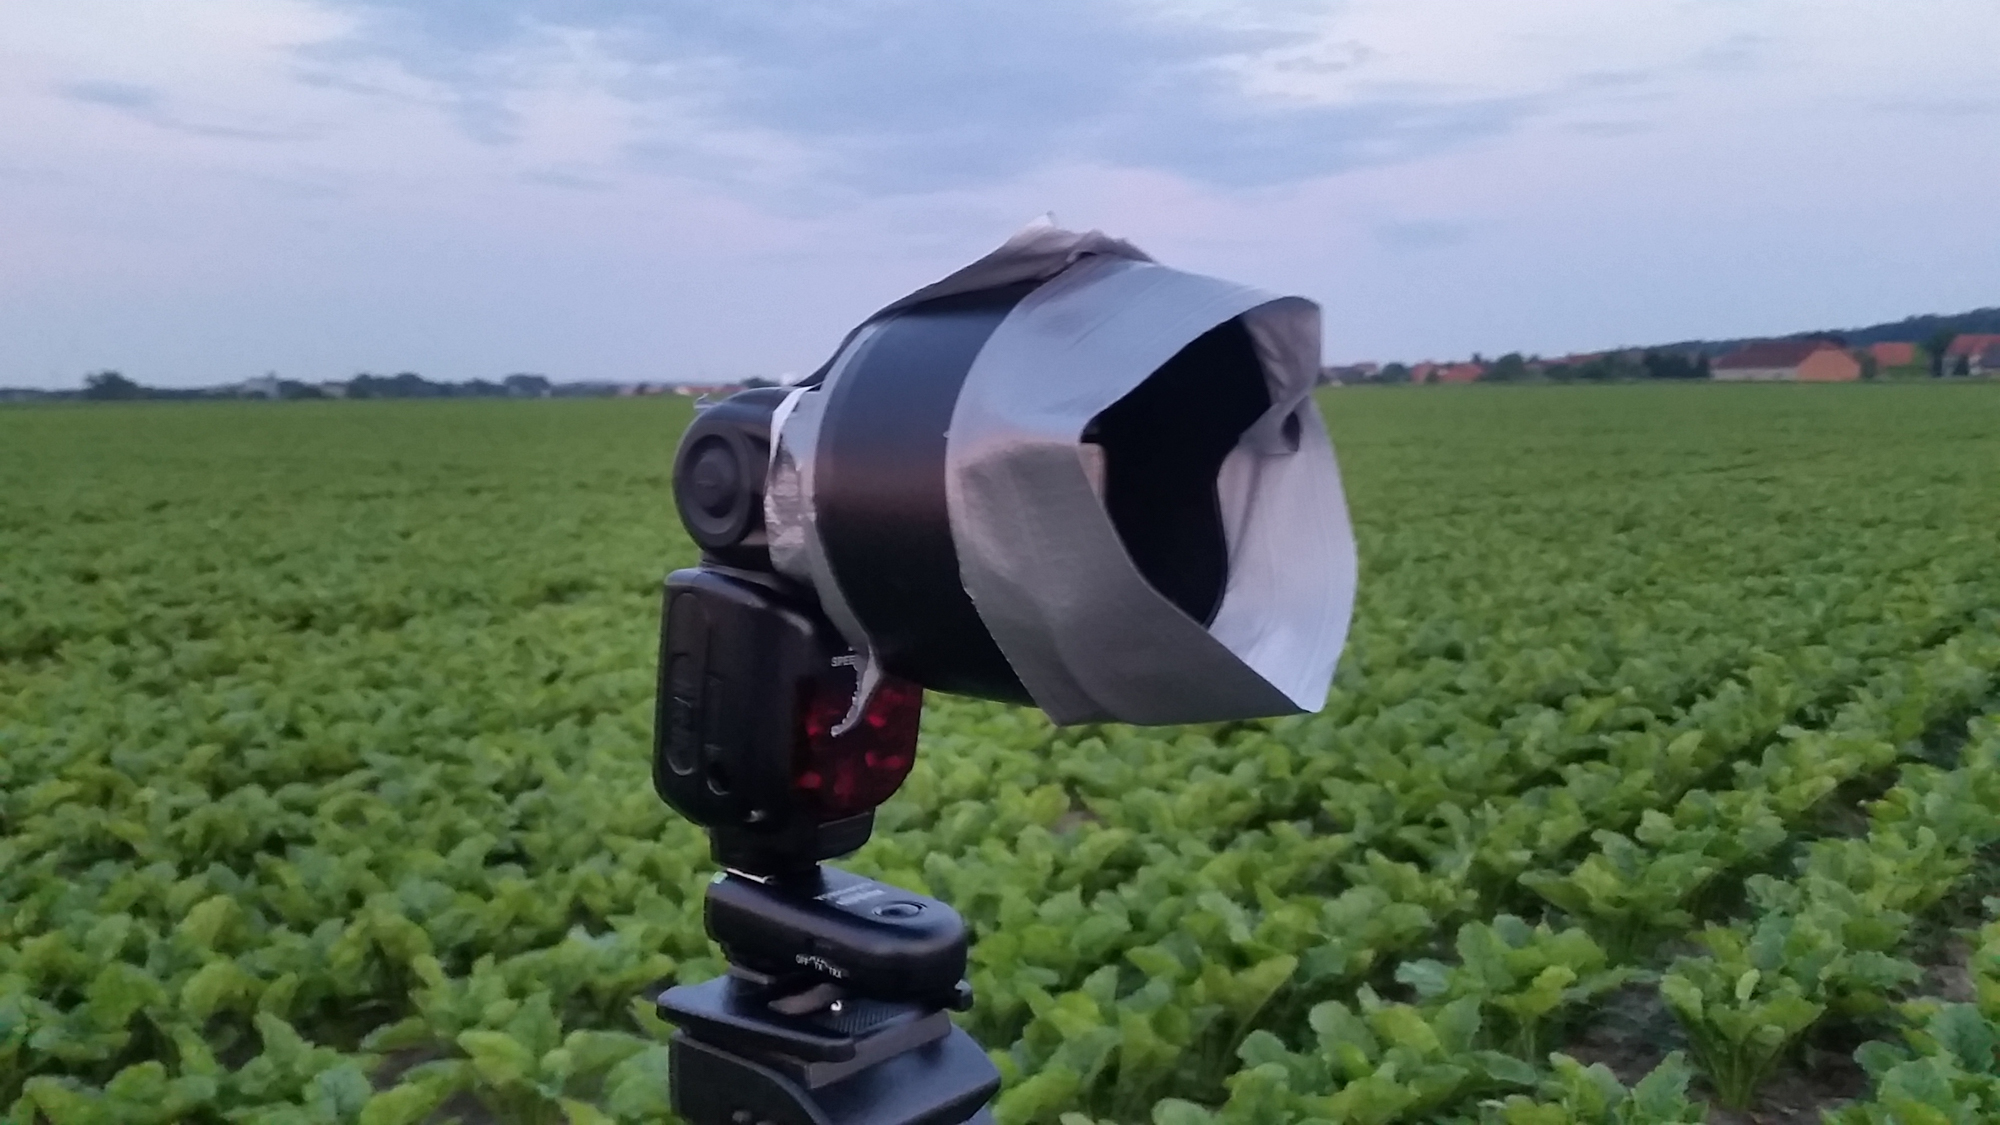 Improvising a Snoot with a lens hood and duct tape